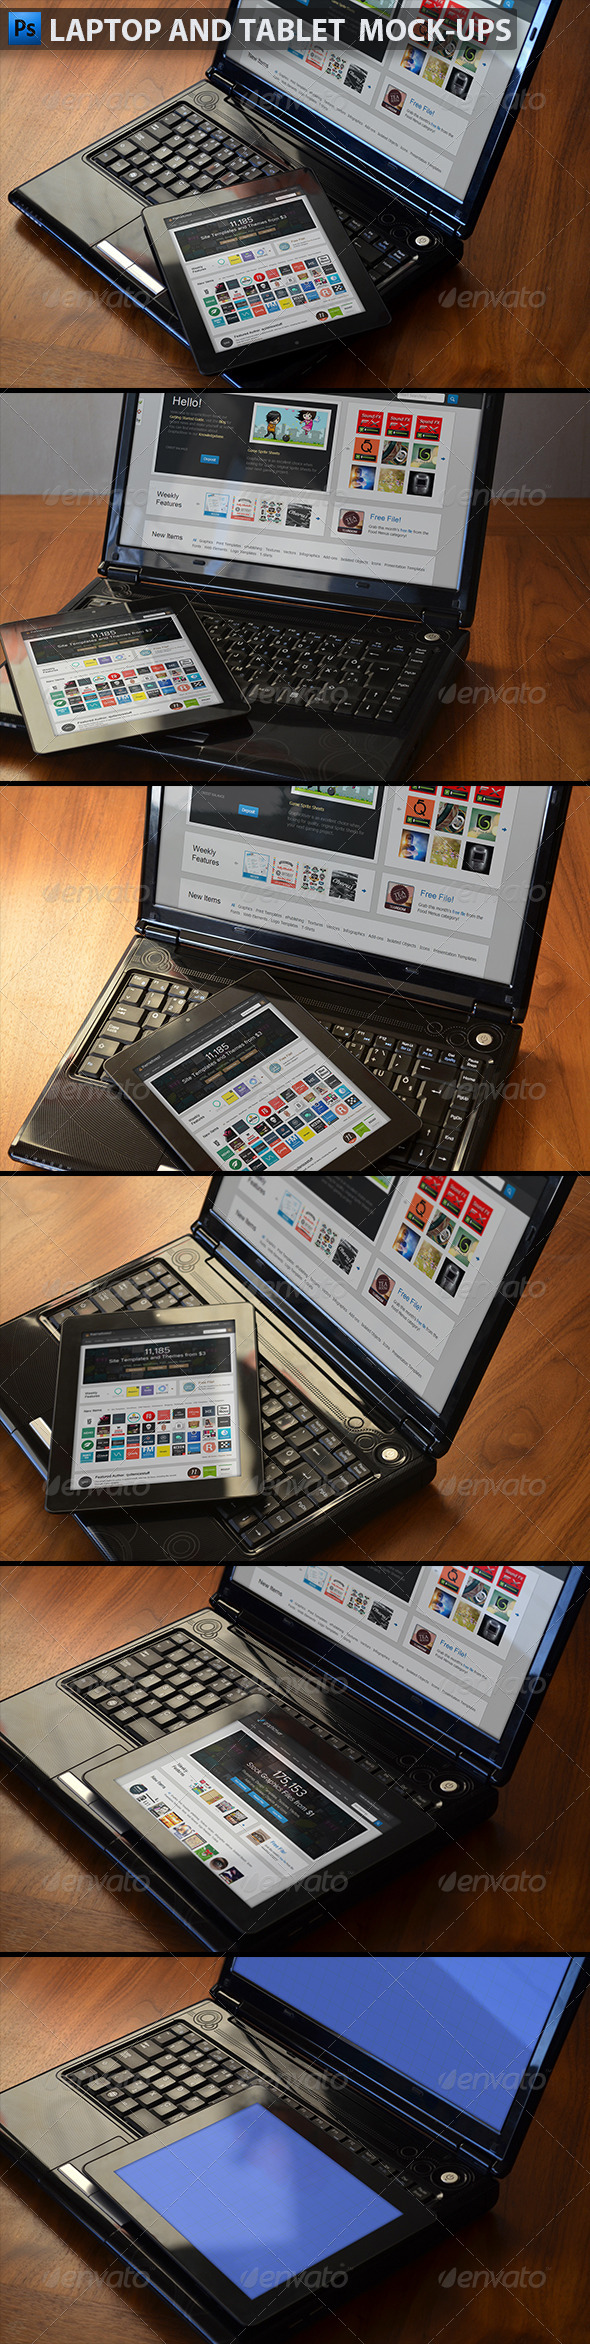 Laptop and Tablet Display Mock-Ups - Displays Product Mock-Ups